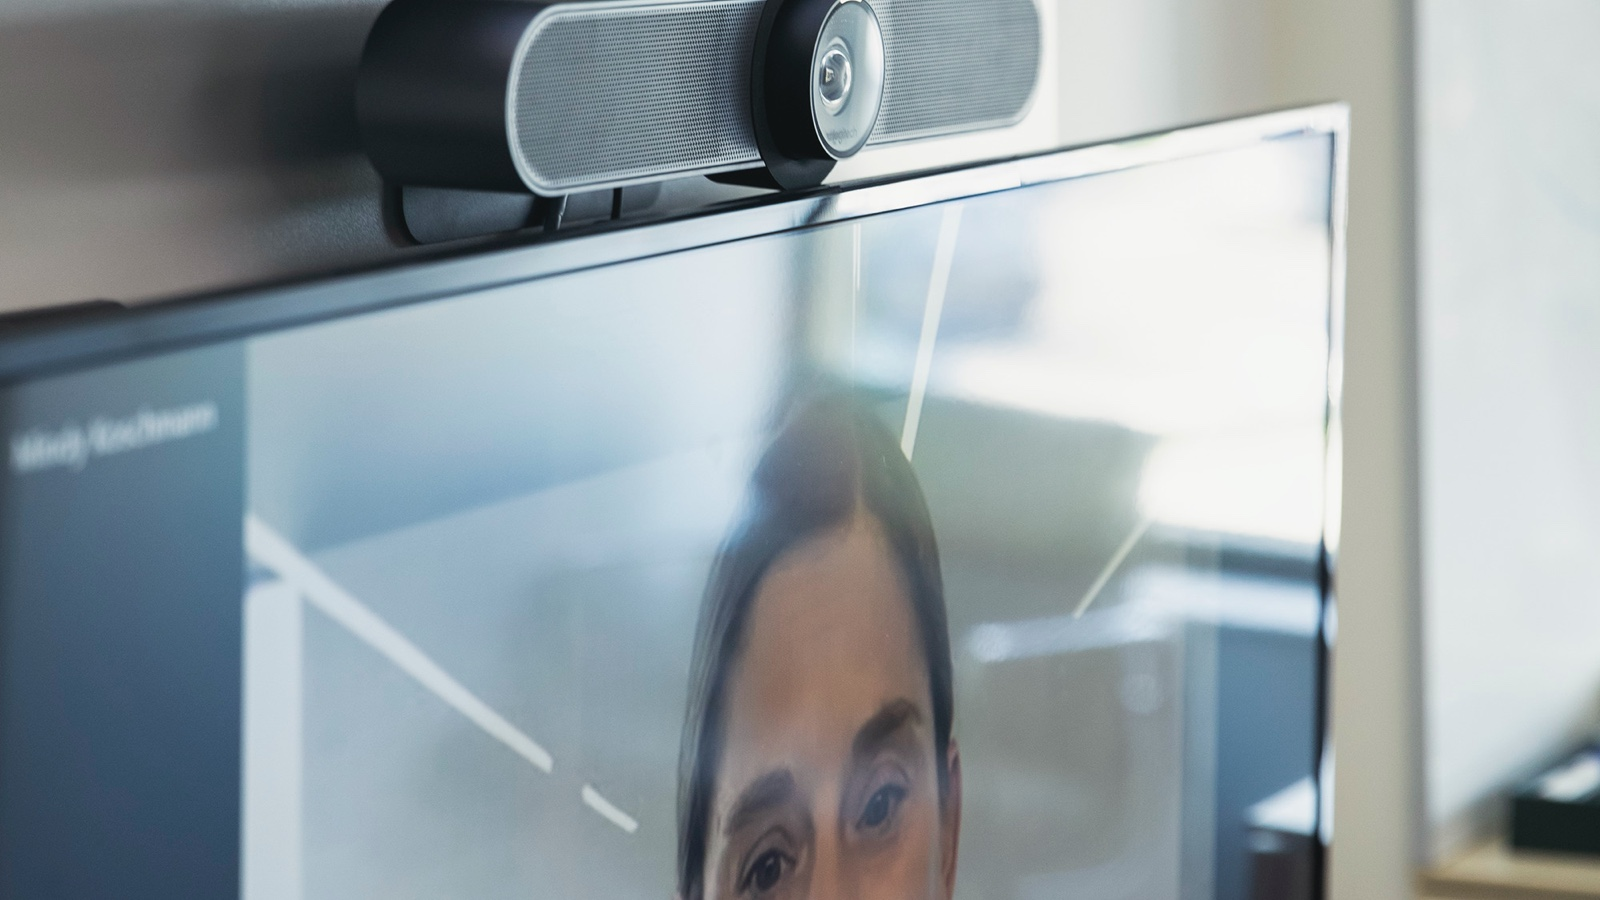 A close-up view of a display with a videoconferencing camera attached to the top.